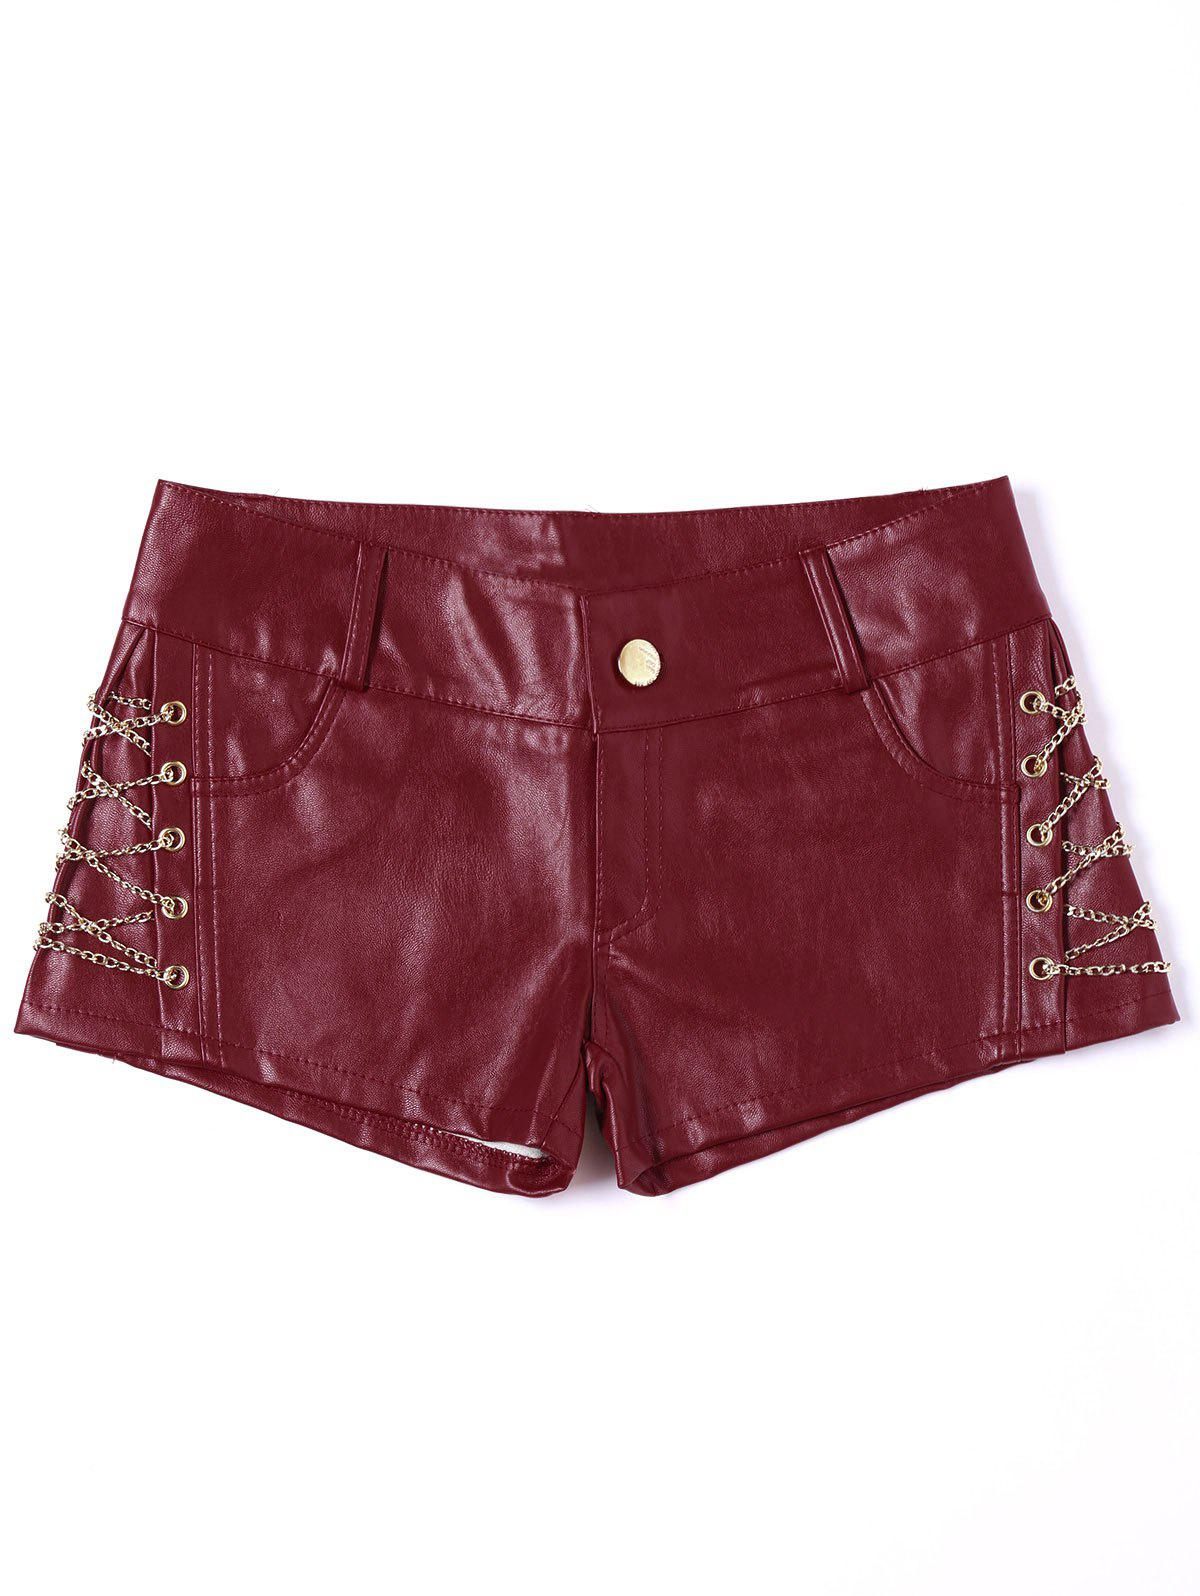 Metal Lace Up Faux Leather Shorts - RED L